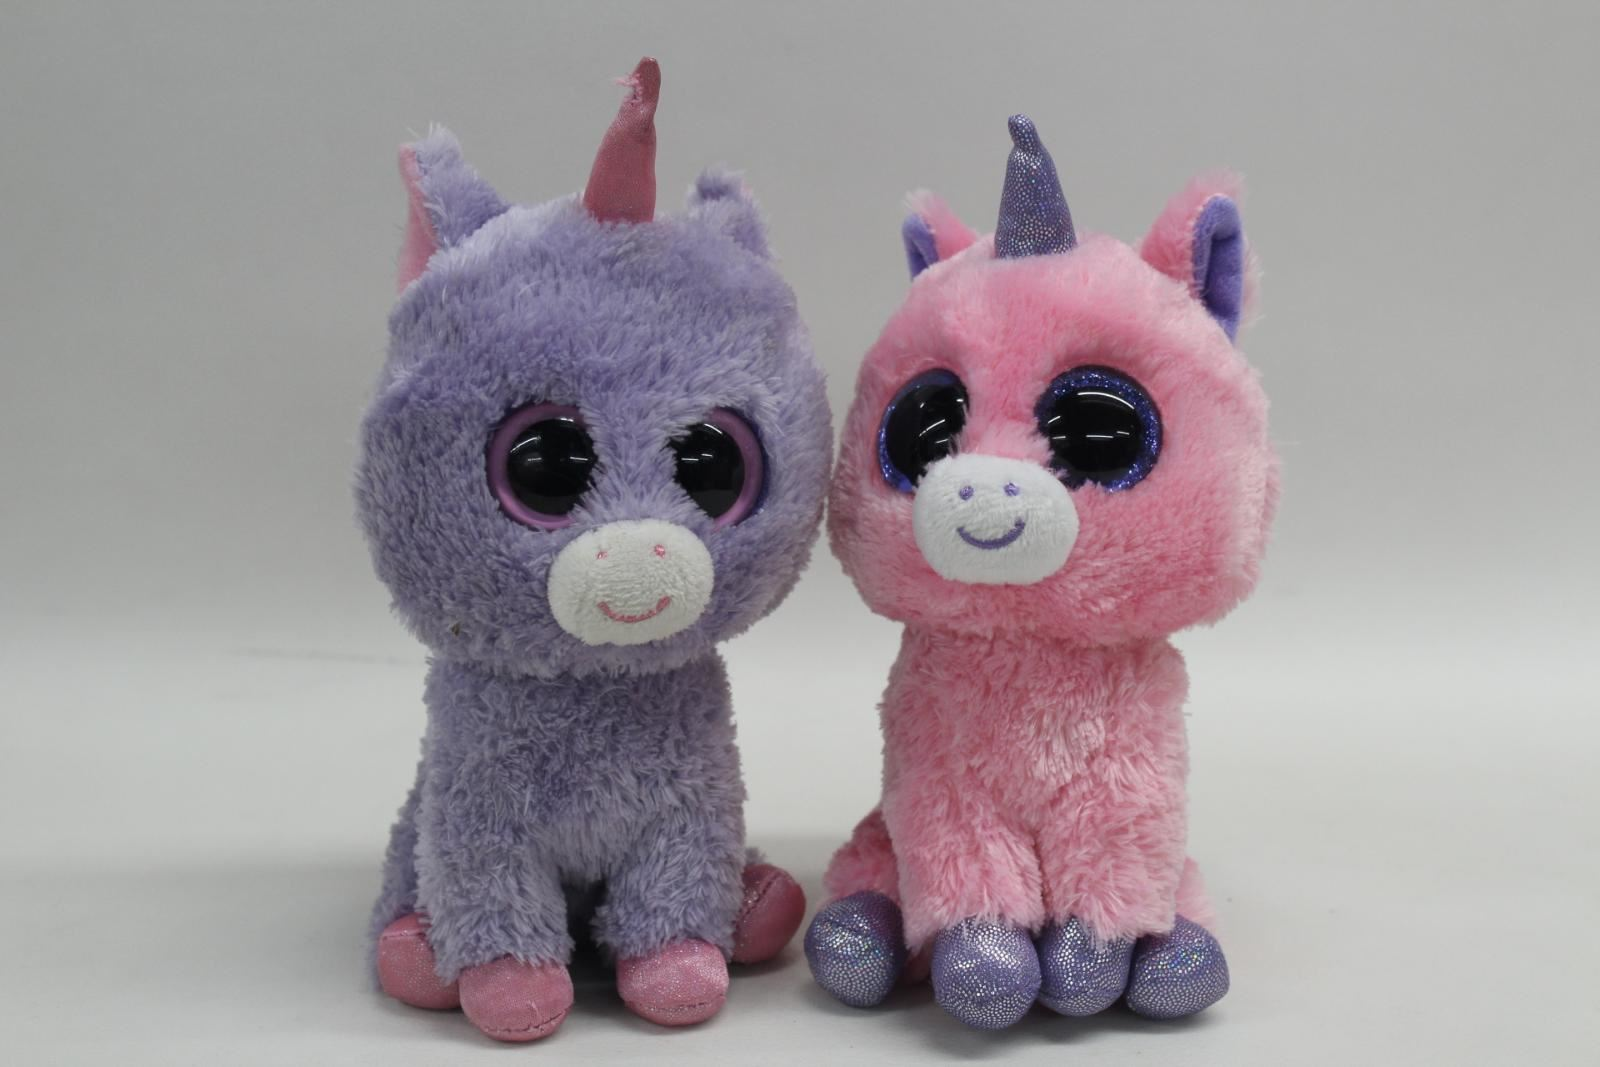 TY-Beanie-Boo-Unicorn-Purple-And-Pink-2011-2013-Collectible-Plush-Toys-6-034